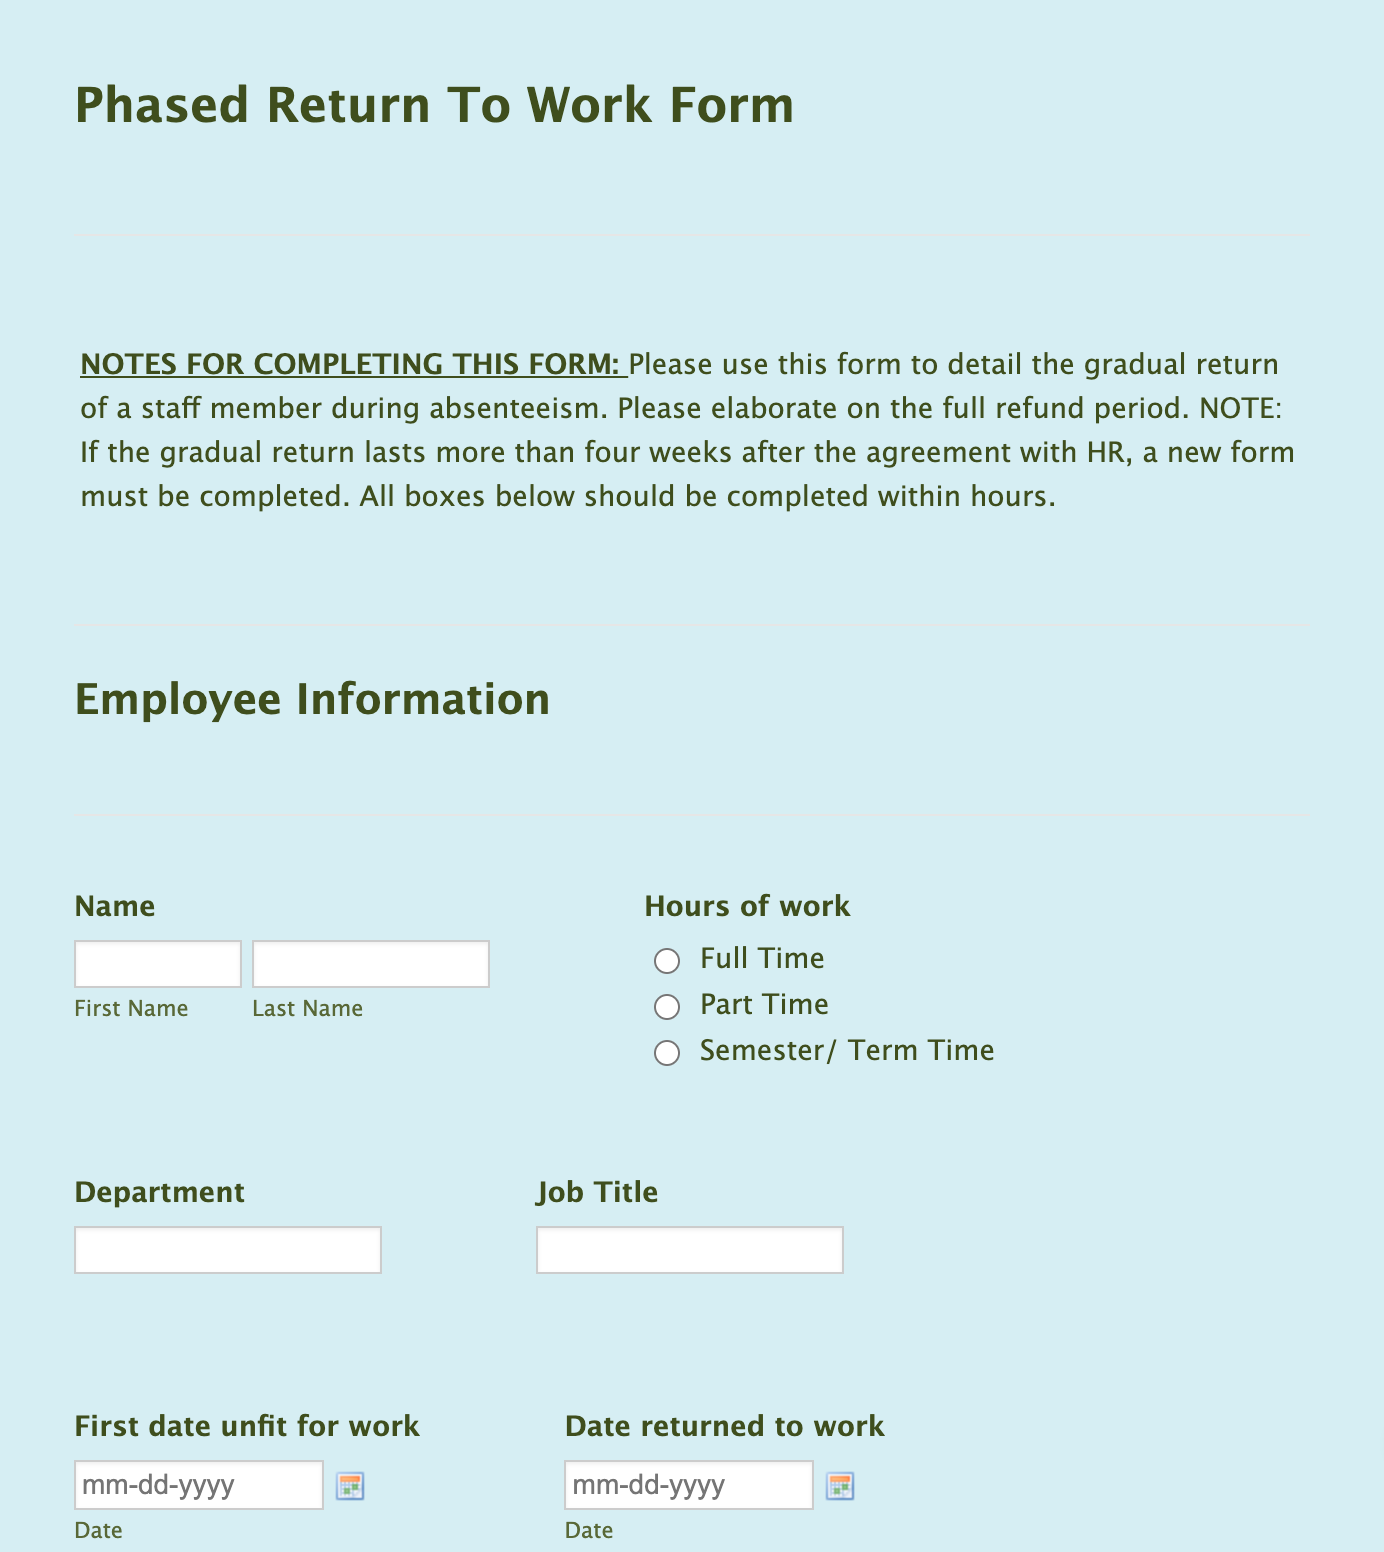 Phased Return to Work Form Template